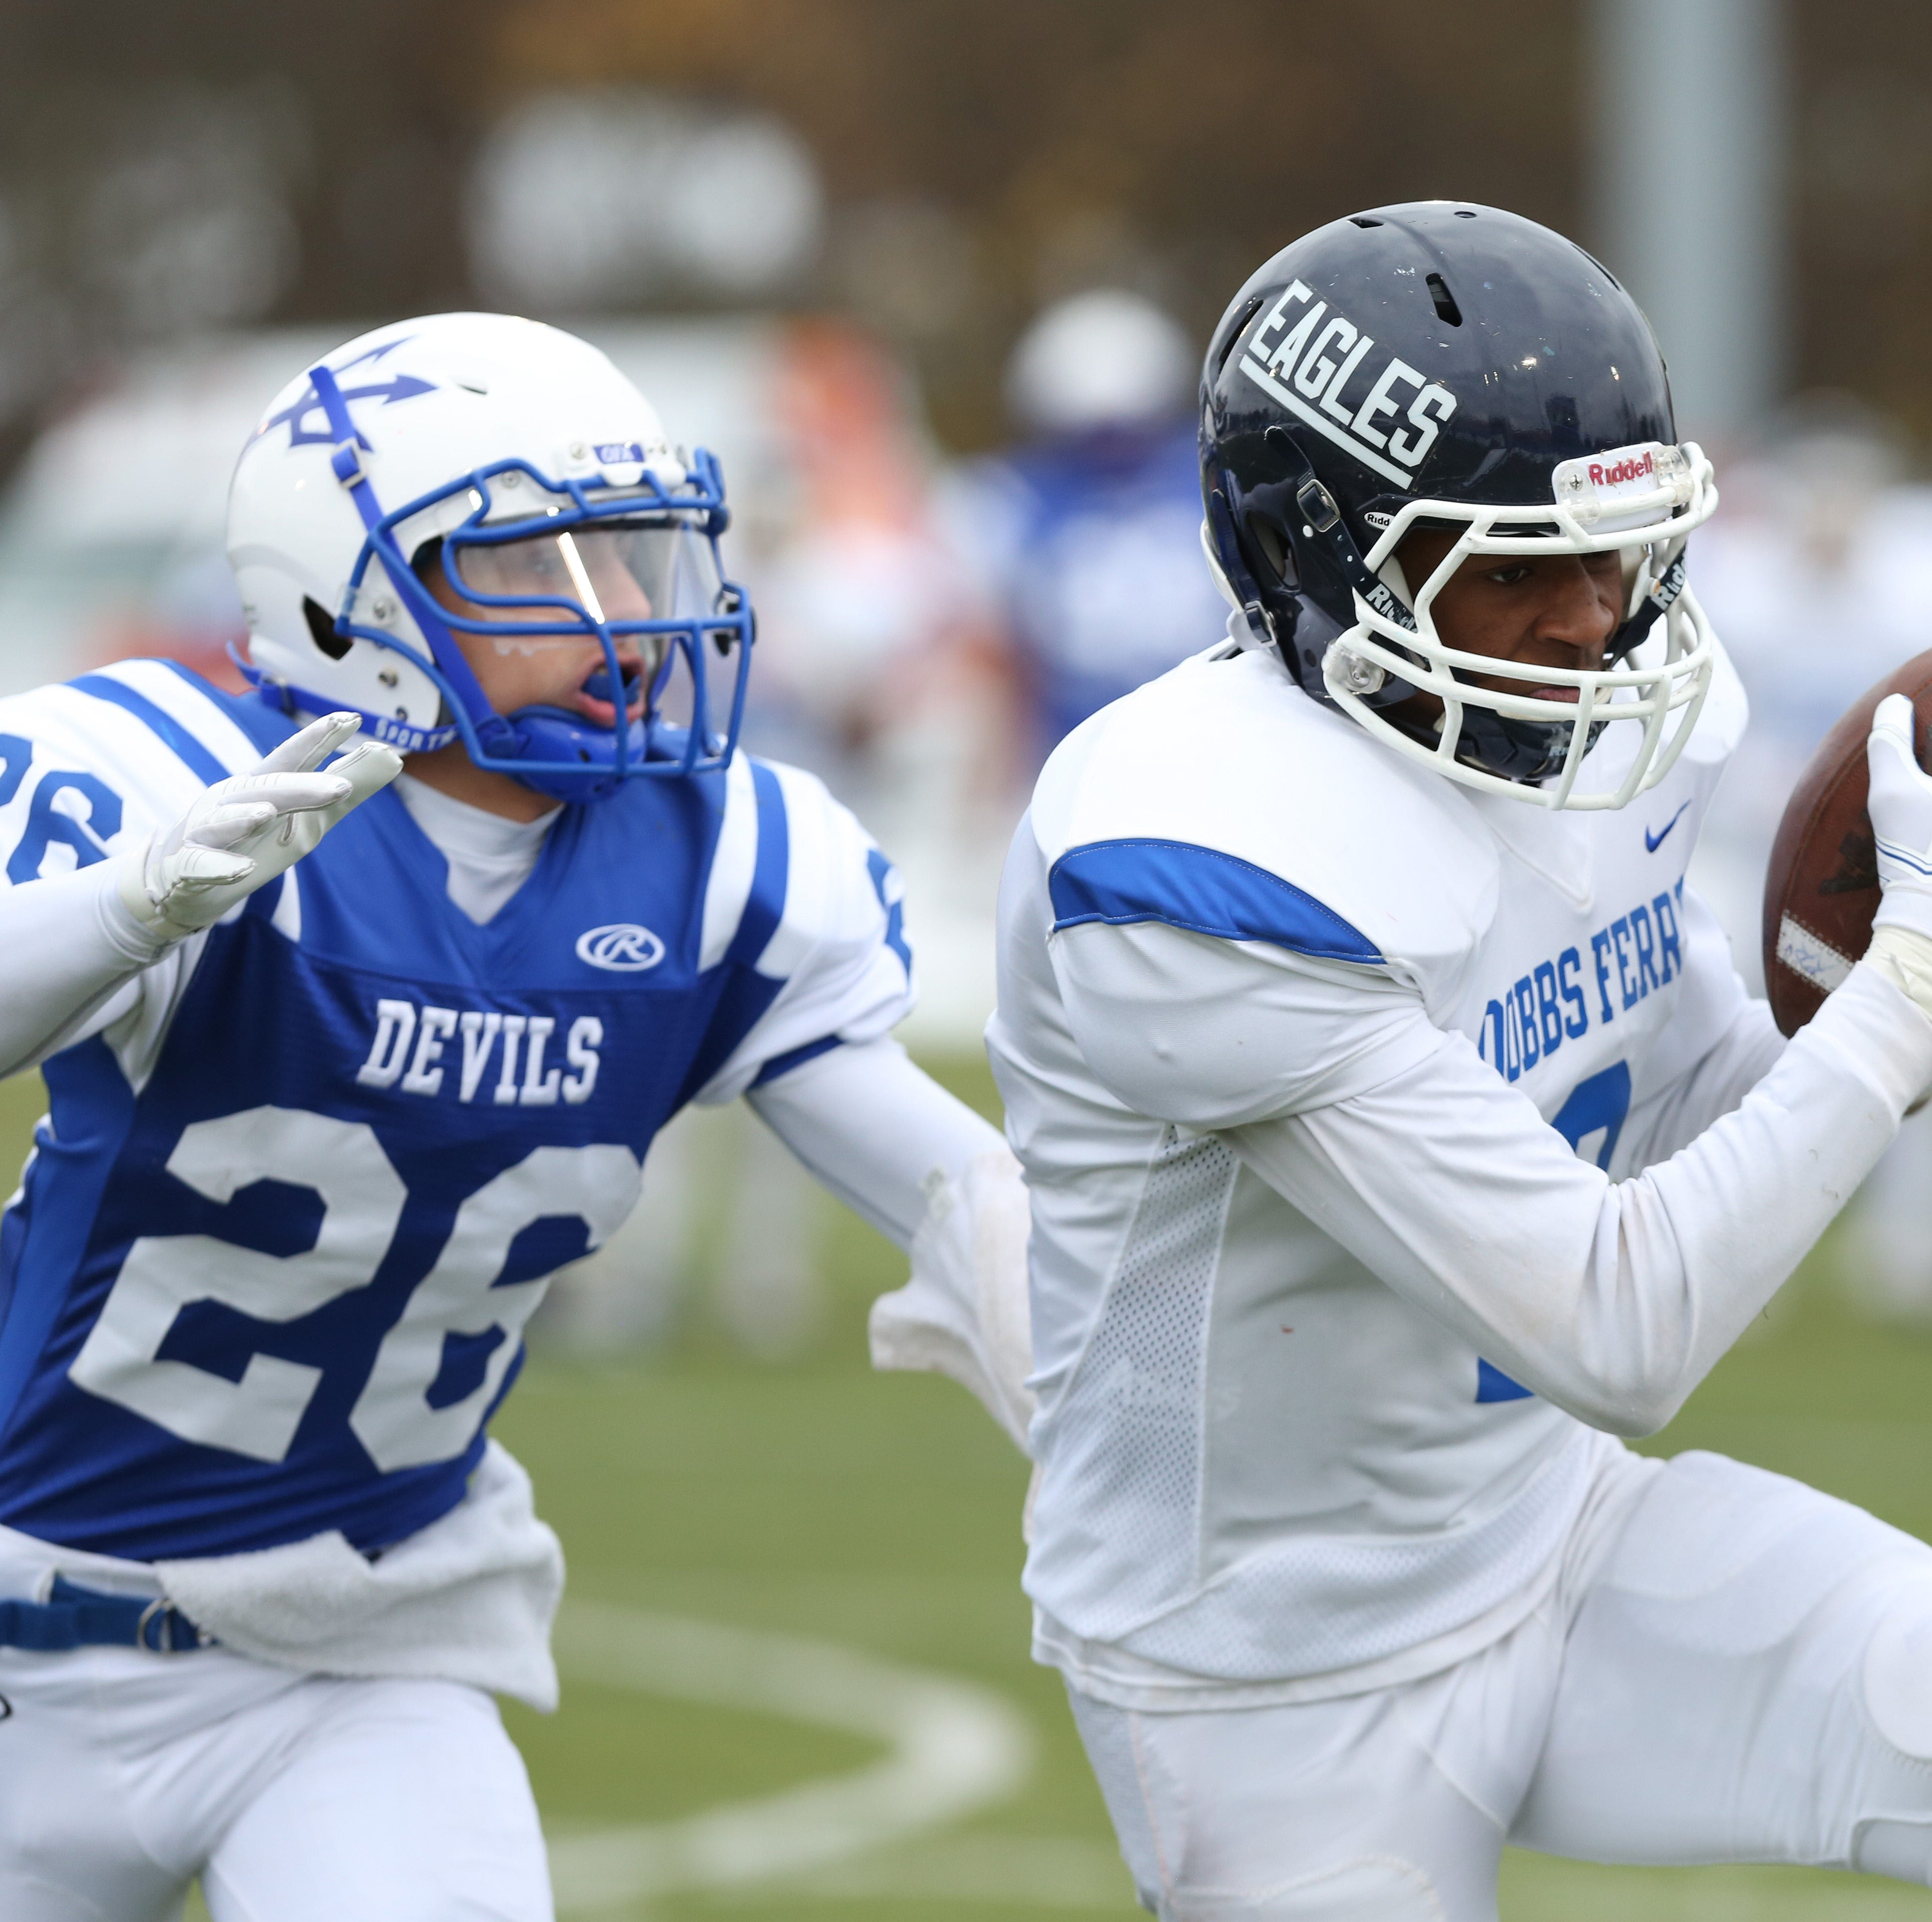 Dobbs Ferry defeated Ogdensburg 55-22 to win the...